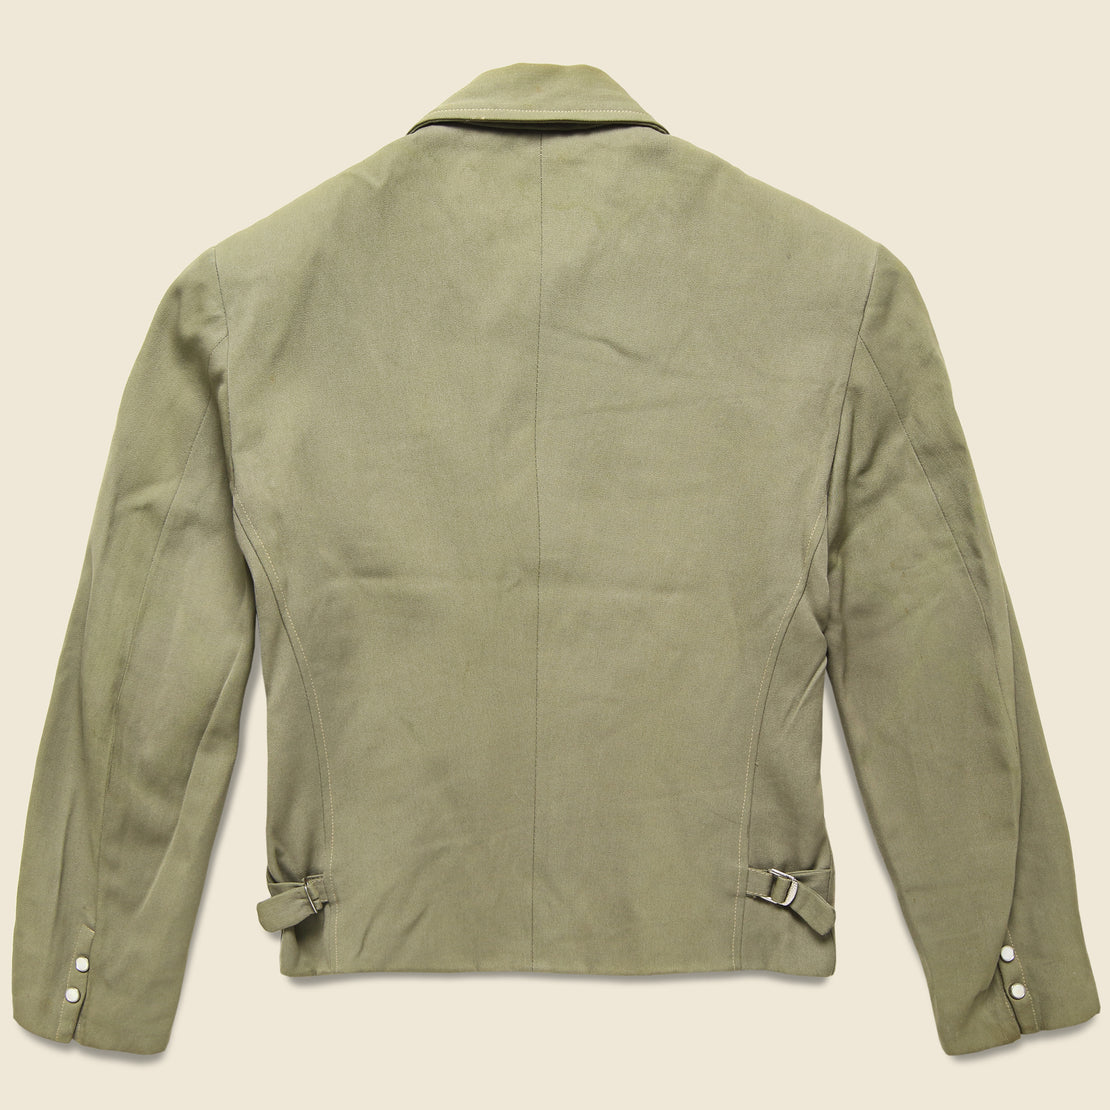 El Patio Western Jacket - Olive